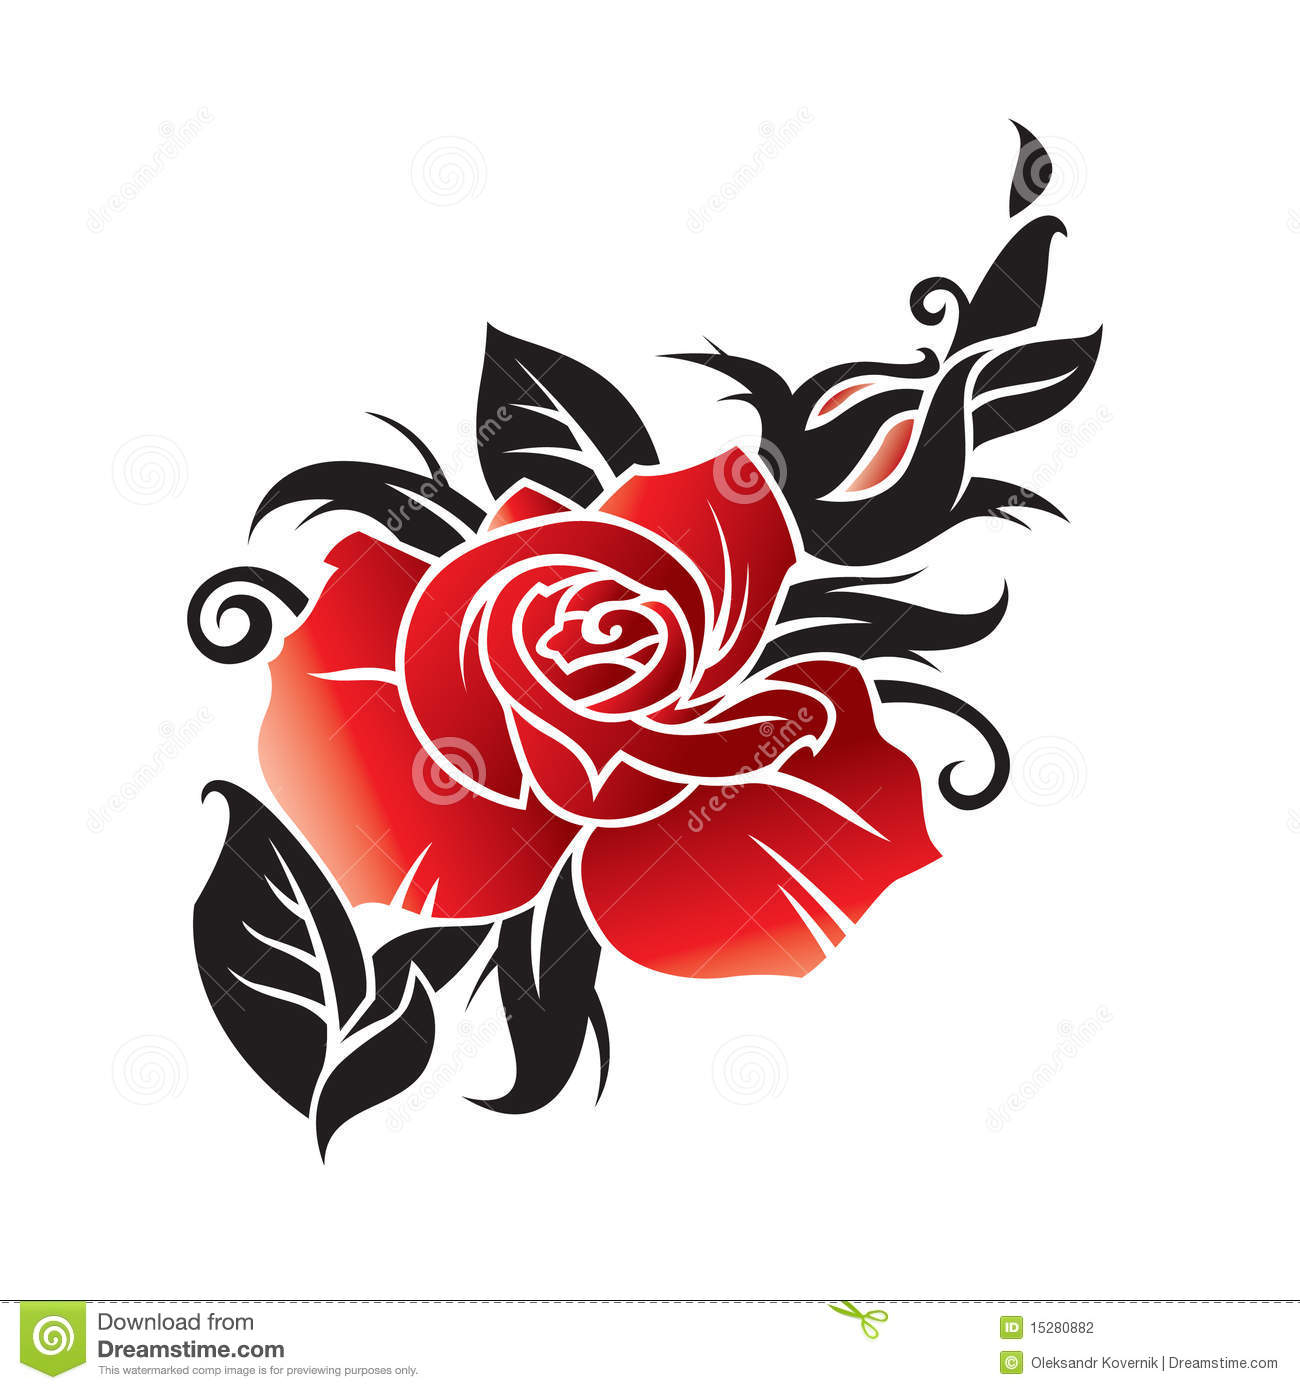 Graphic Rose Images.